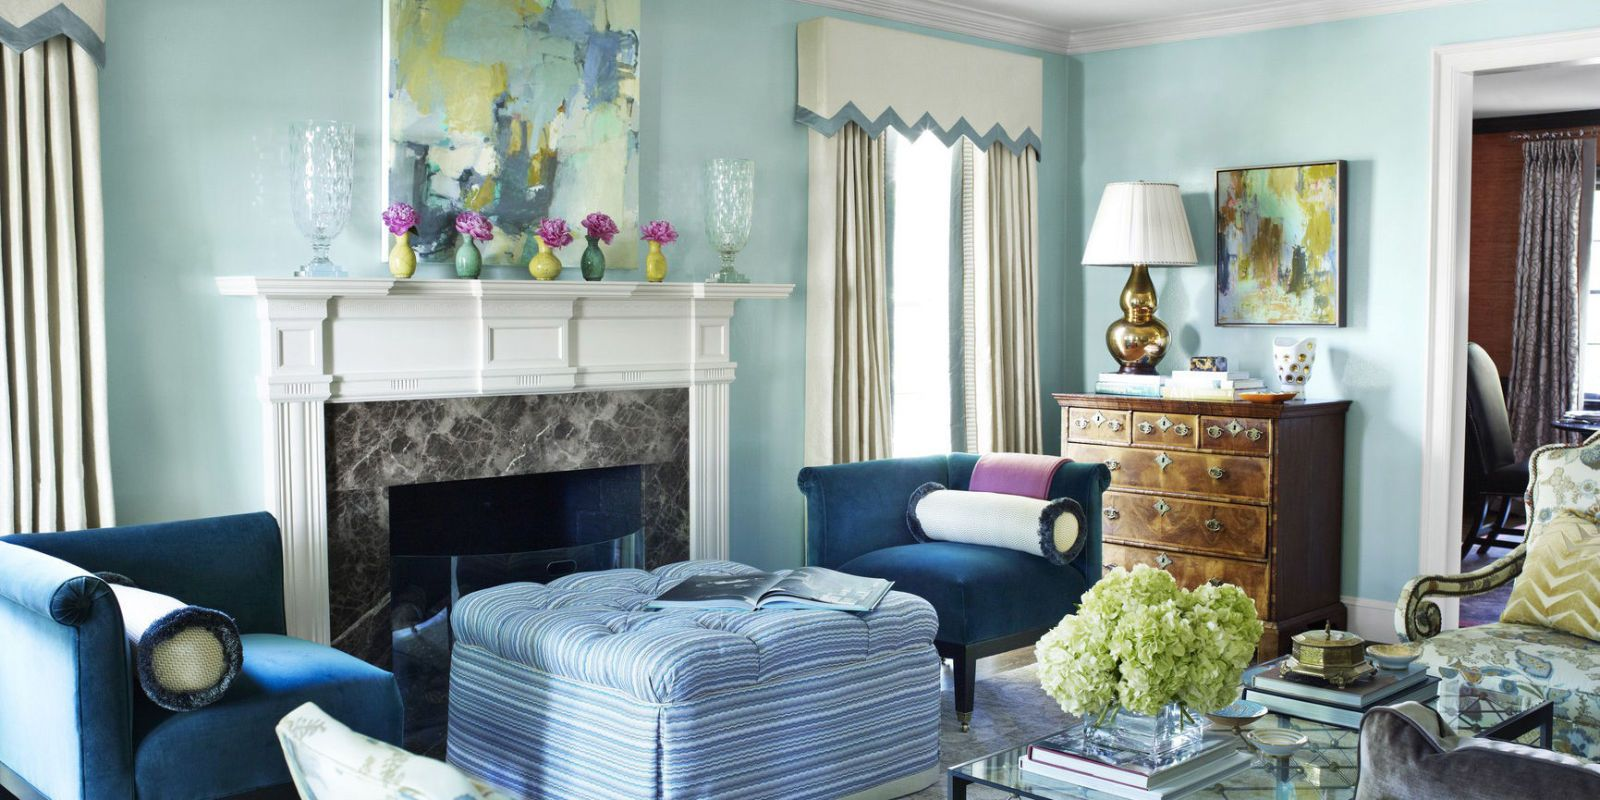 15 best living room color ideas top paint colors for living rooms rh housebeautiful com popular living room paint colors neutrals popular living room paint colors 2017